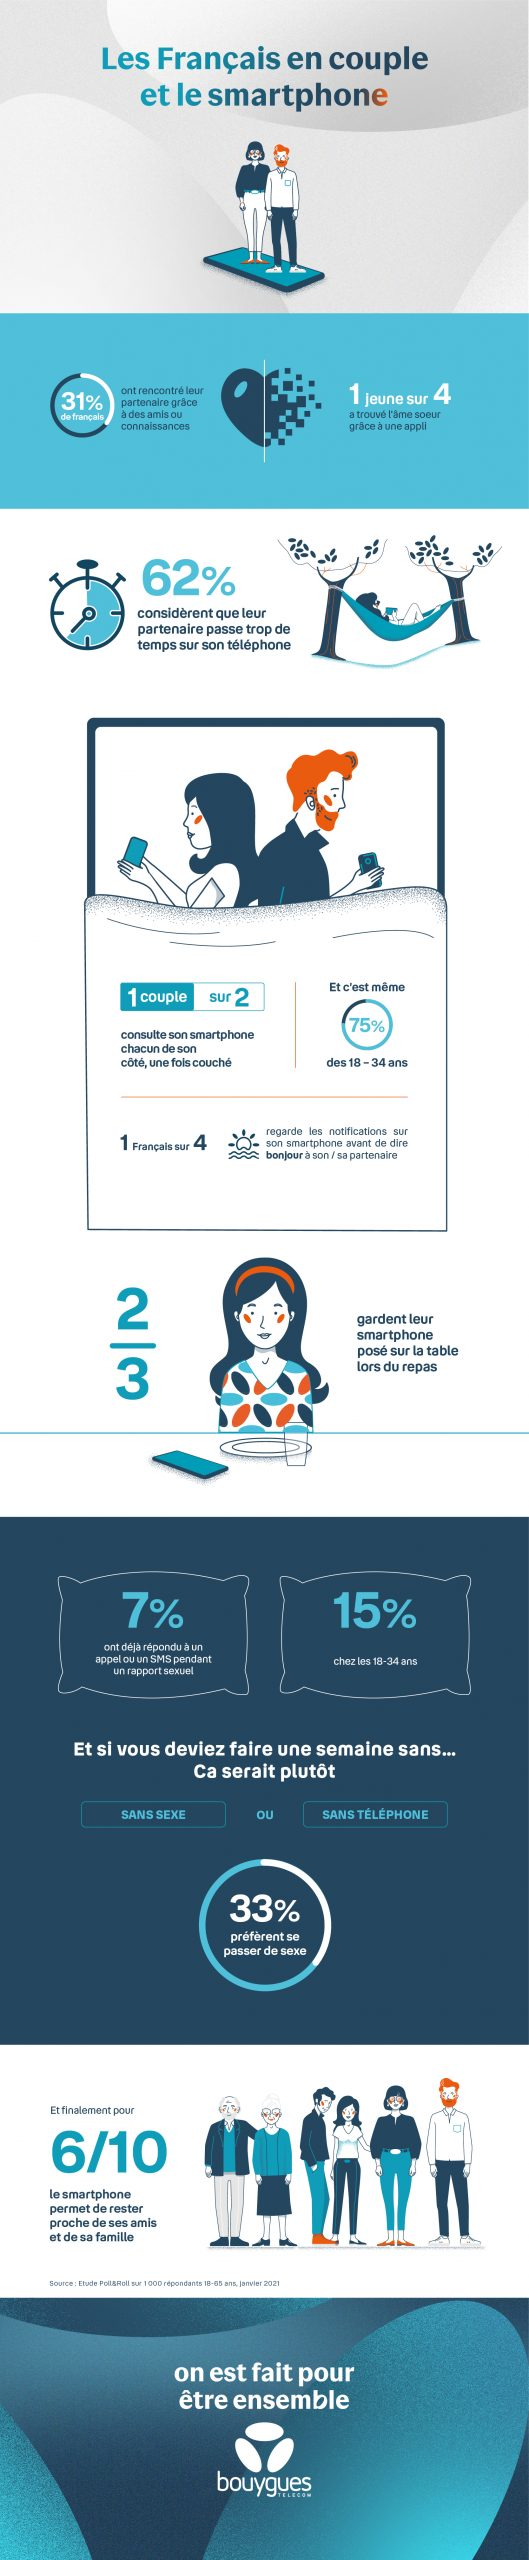 Infographie - Couple - smartphone - chiffres